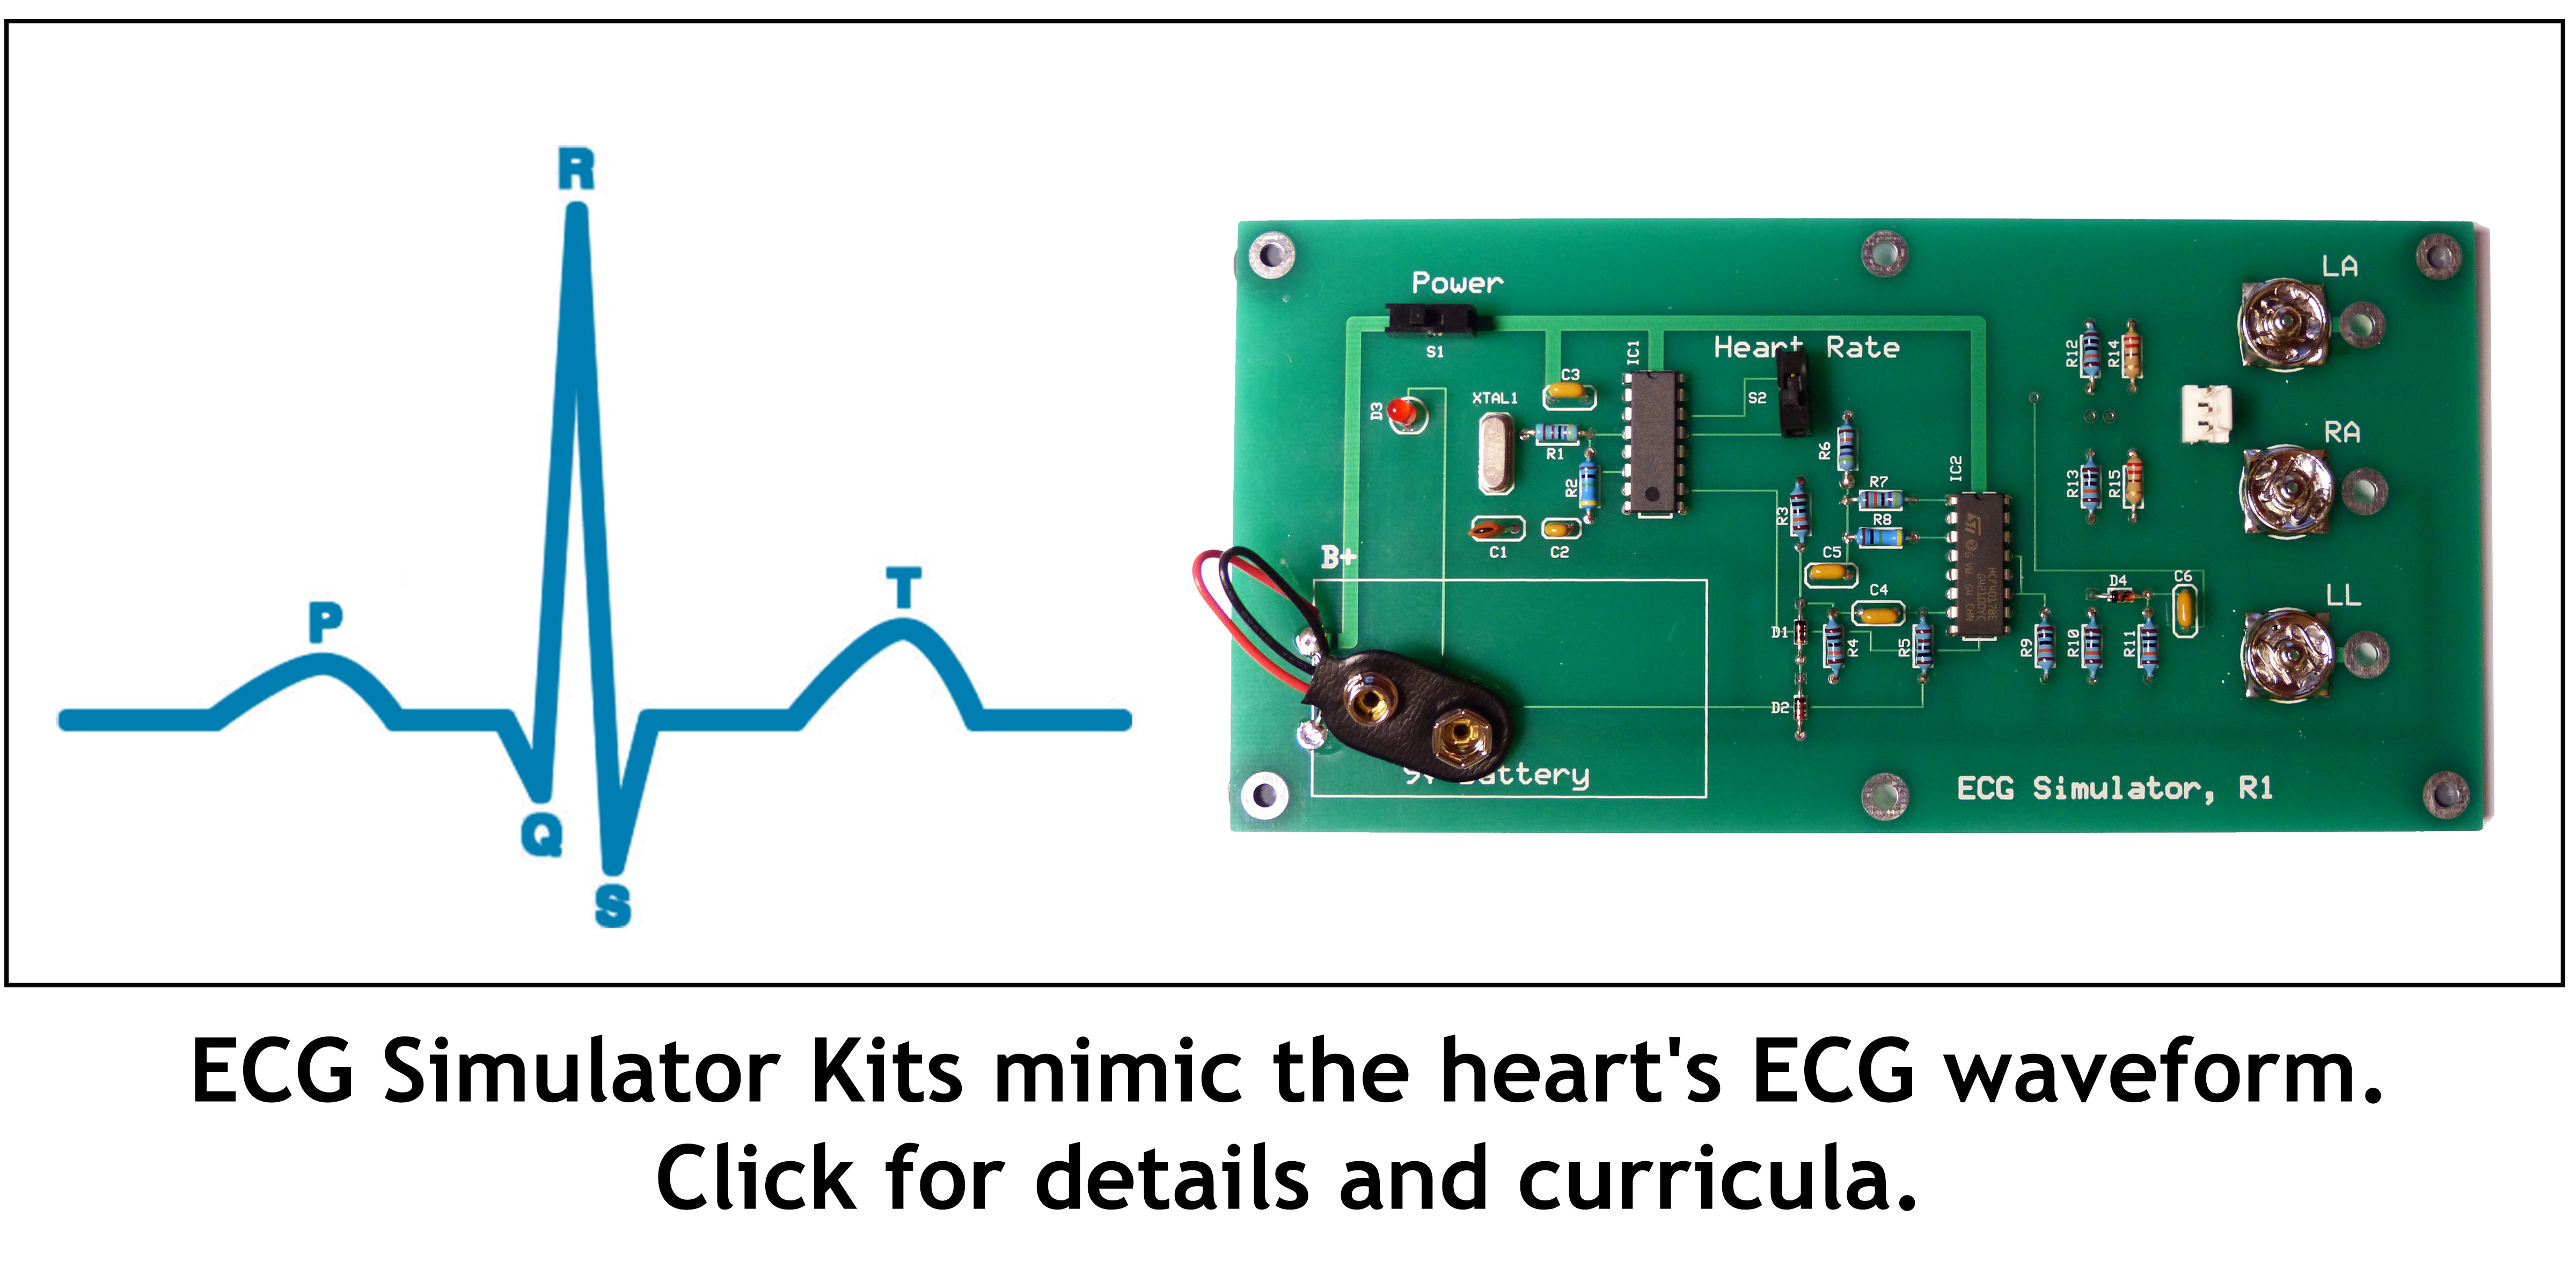 Kits Overview Engineering World Health Electronic Circuit Buy Online Ewh Kit Pricing